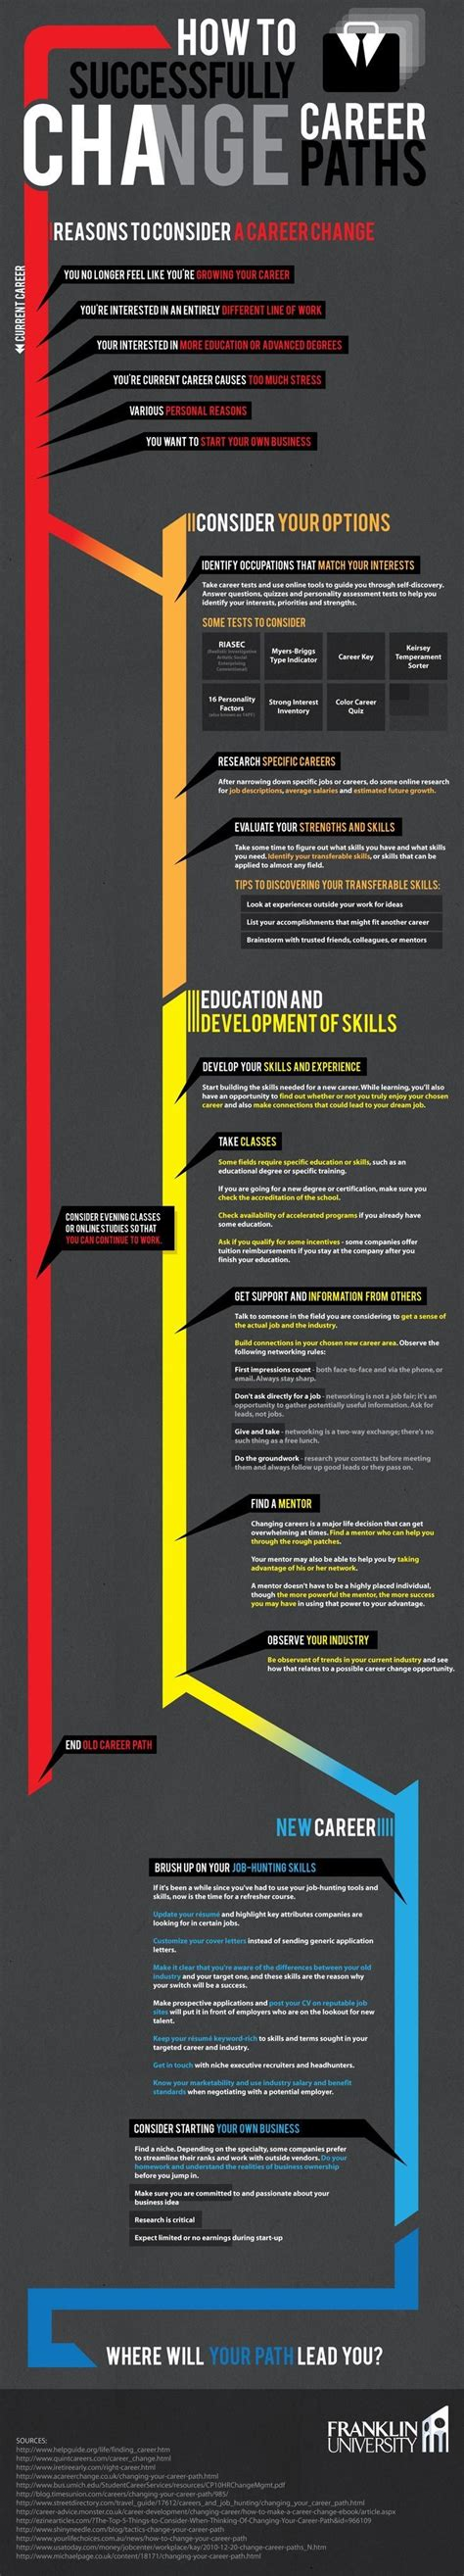 11703 career path infographic infographic how to successfully change career paths